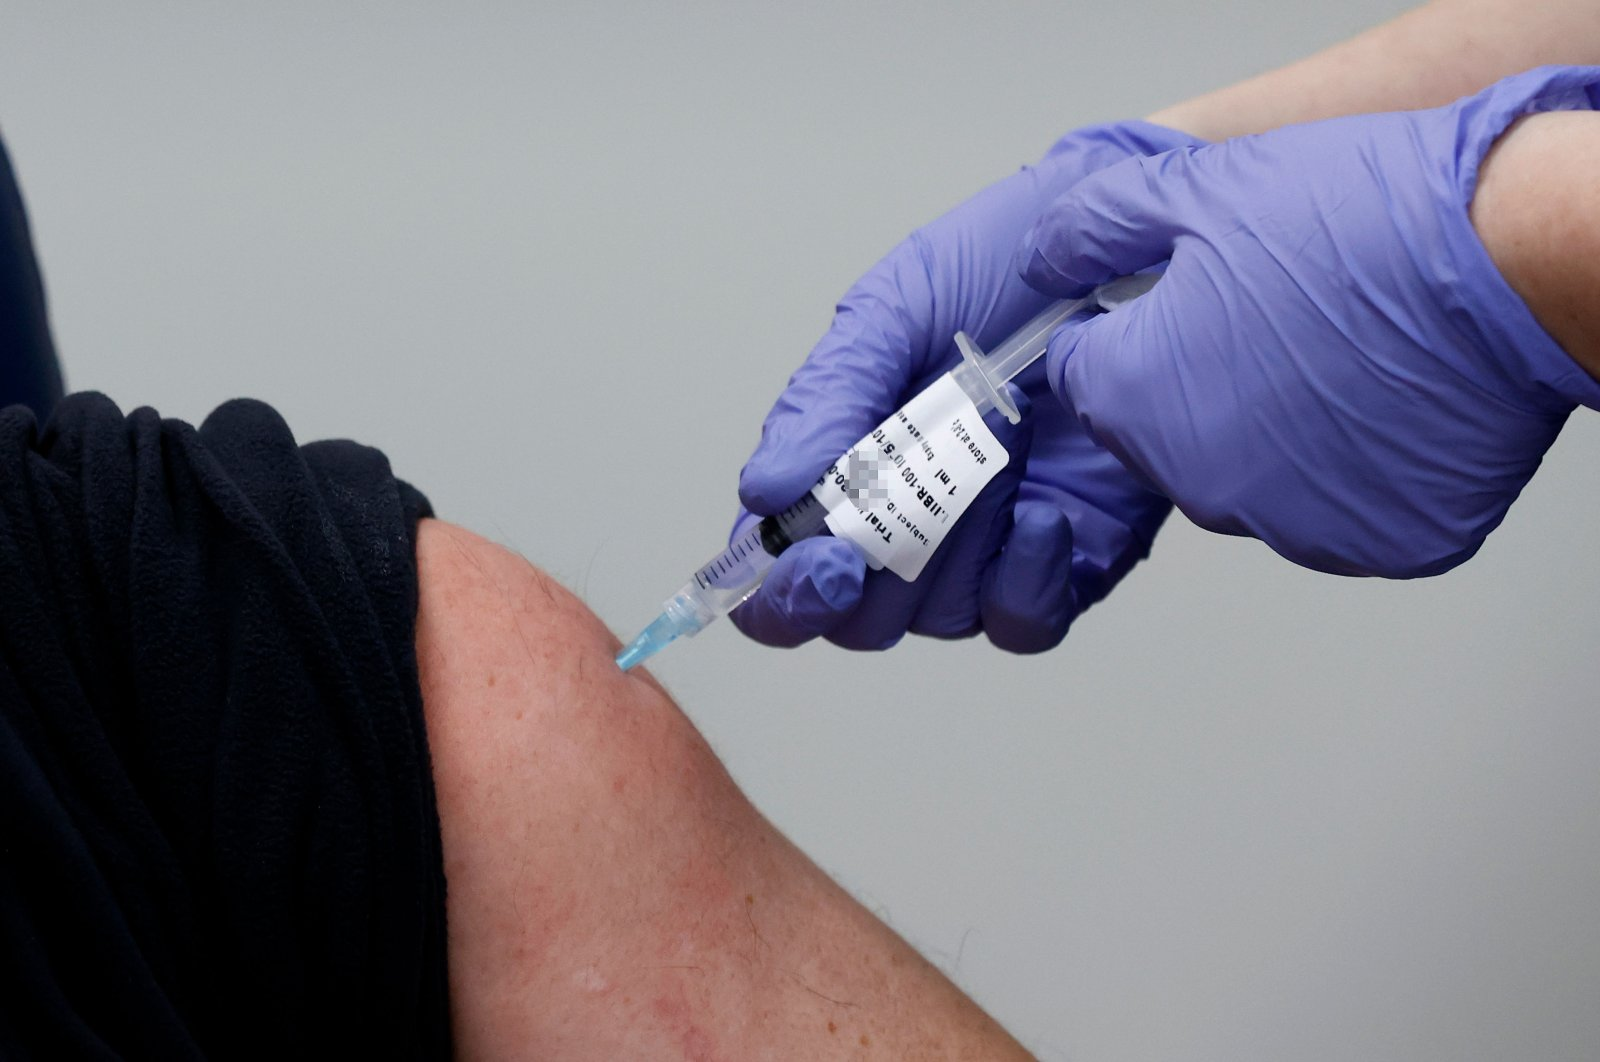 An Israeli volunteer receives the second dose of an experimental Israeli-made COVID-19 vaccine at the Sheba Medical Center, the country's largest hospital, in Ramat Gan near the coastal city of Tel Aviv, on Jan. 14, 2021. (AFP Photo)